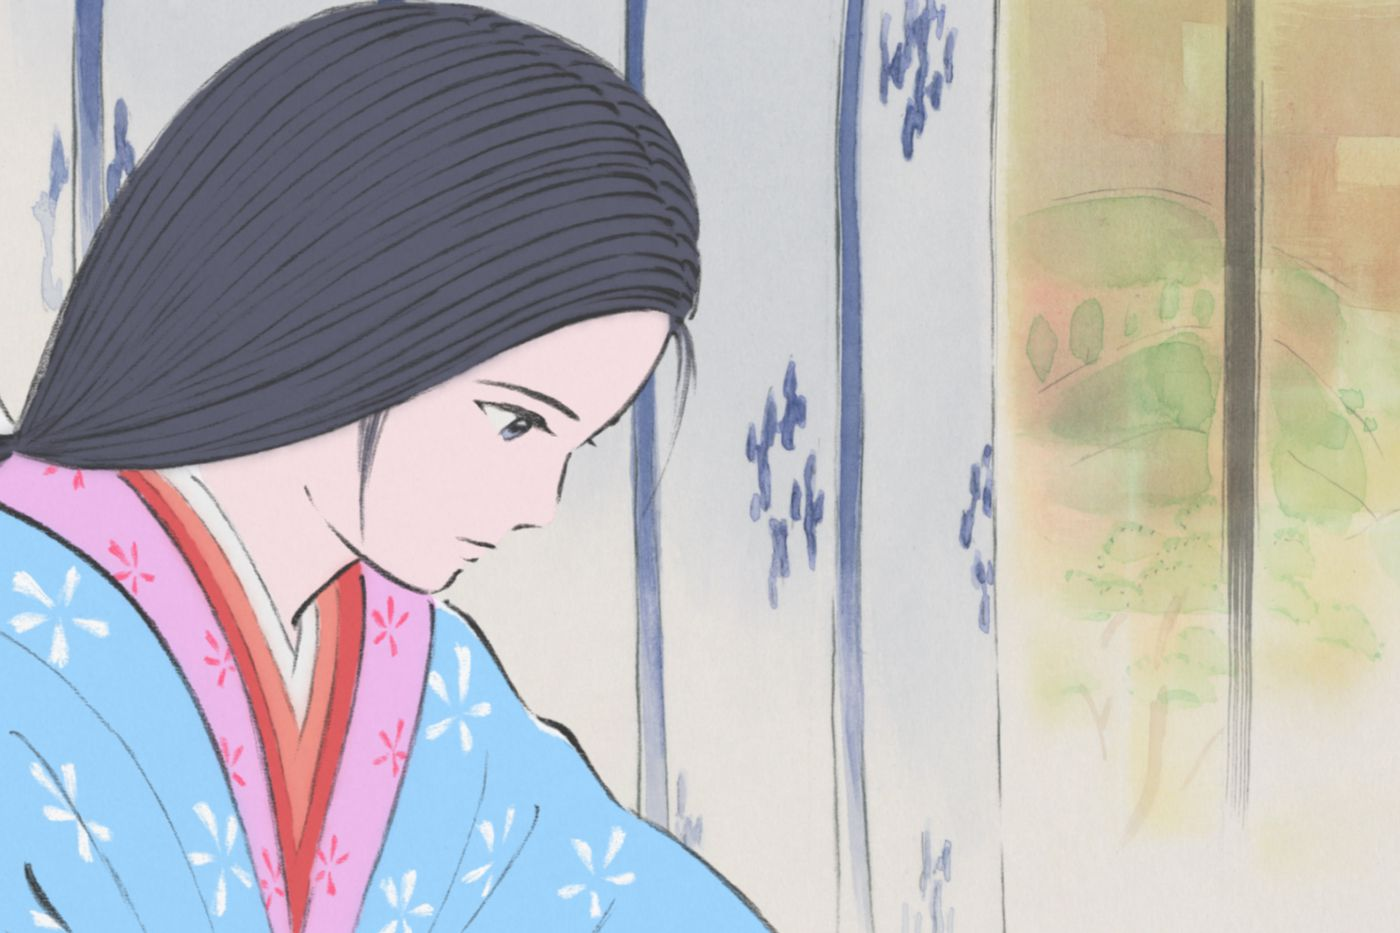 The Tale of the Princess Kaguya' is the most gorgeous film